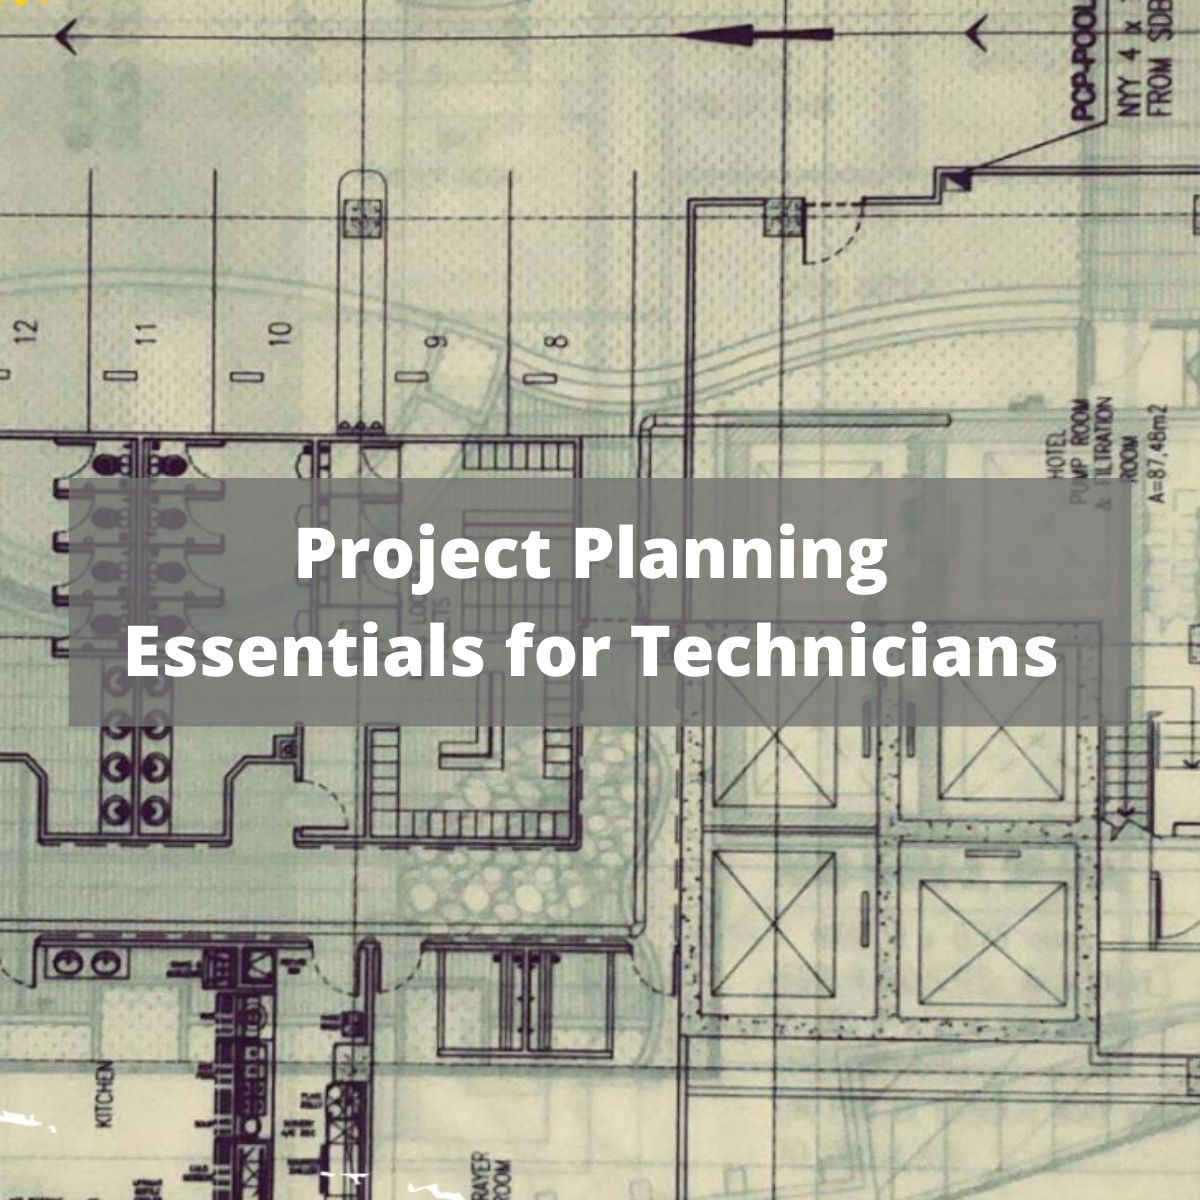 Project Planning Essentials for Technicians Thumbnail